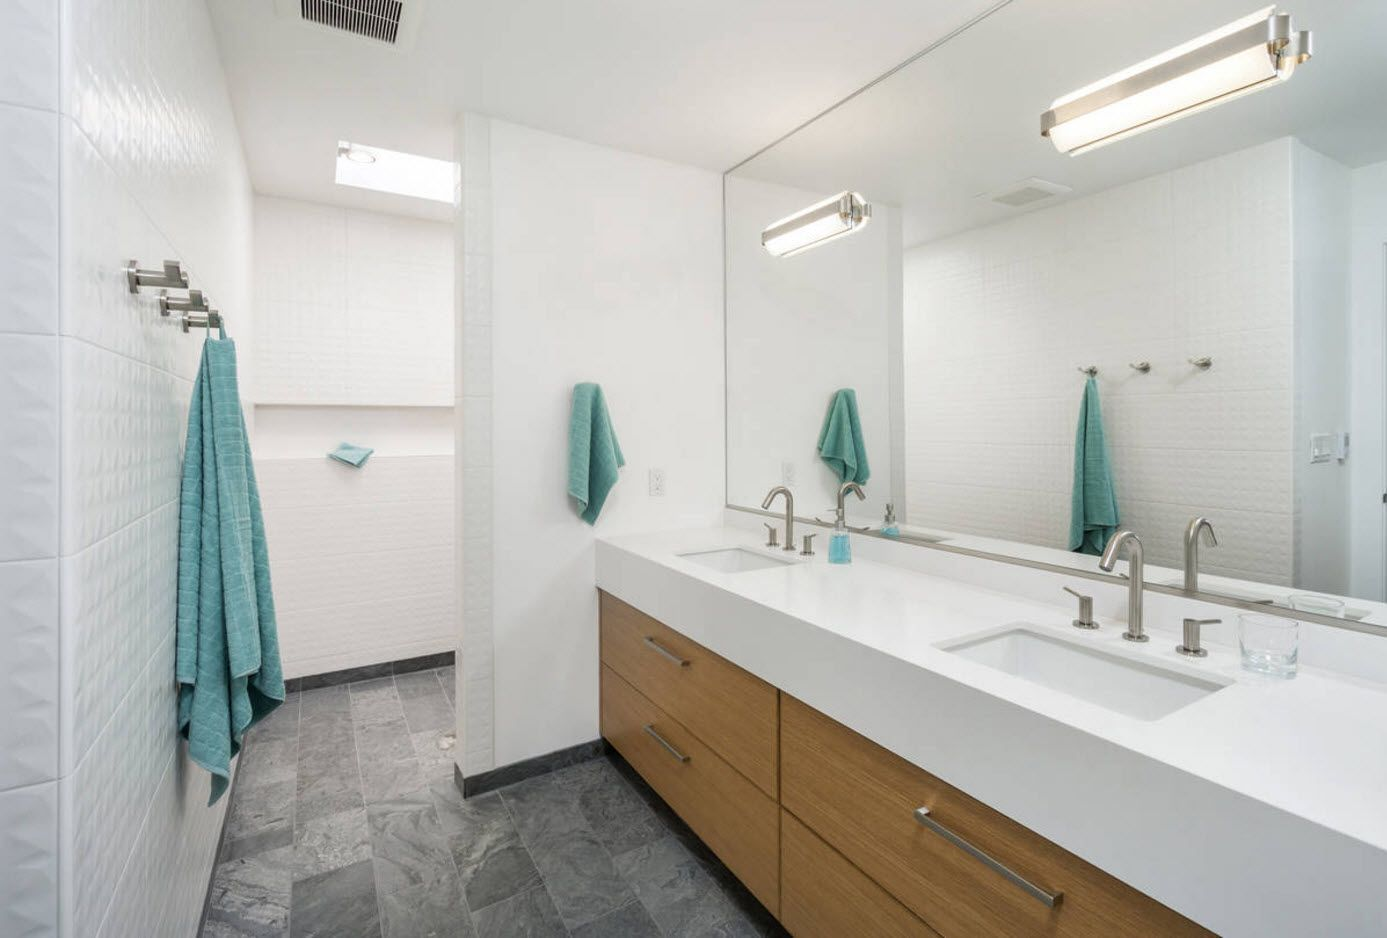 Absolutely white sterile atmosphere of the bathroom diluted by towels